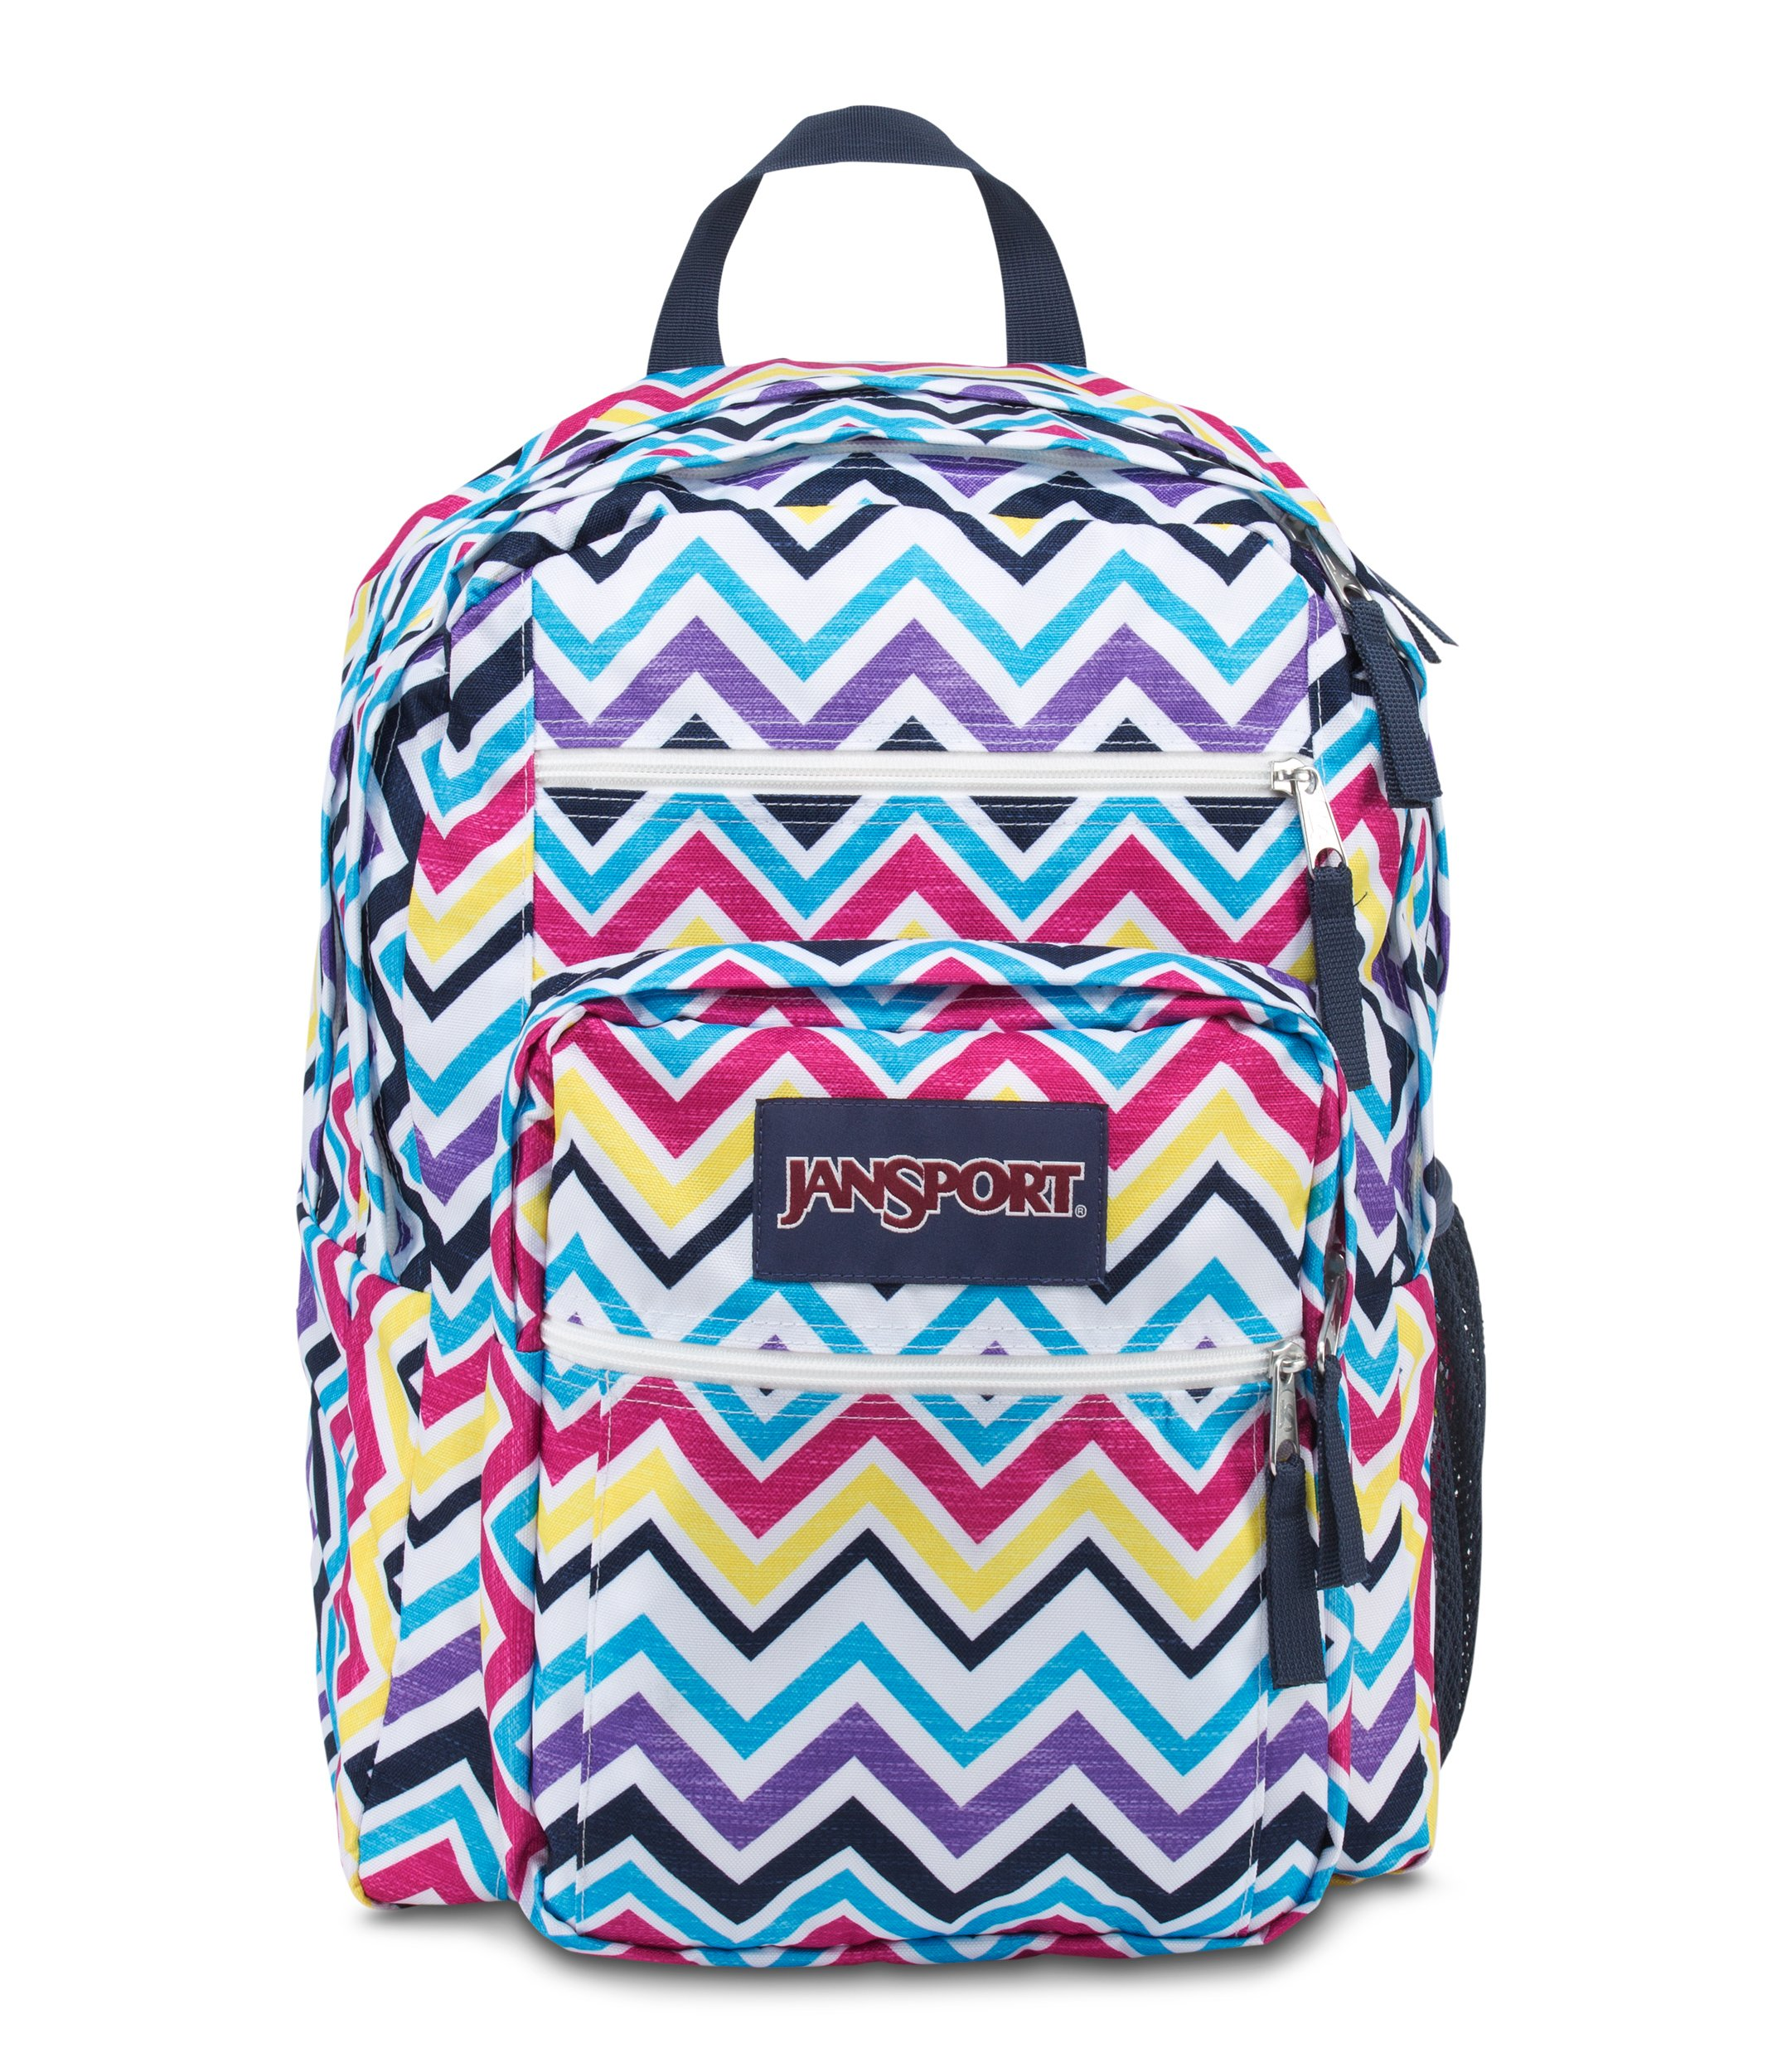 JanSport Big Student Multi Saucy Chevron Backpack by JanSport